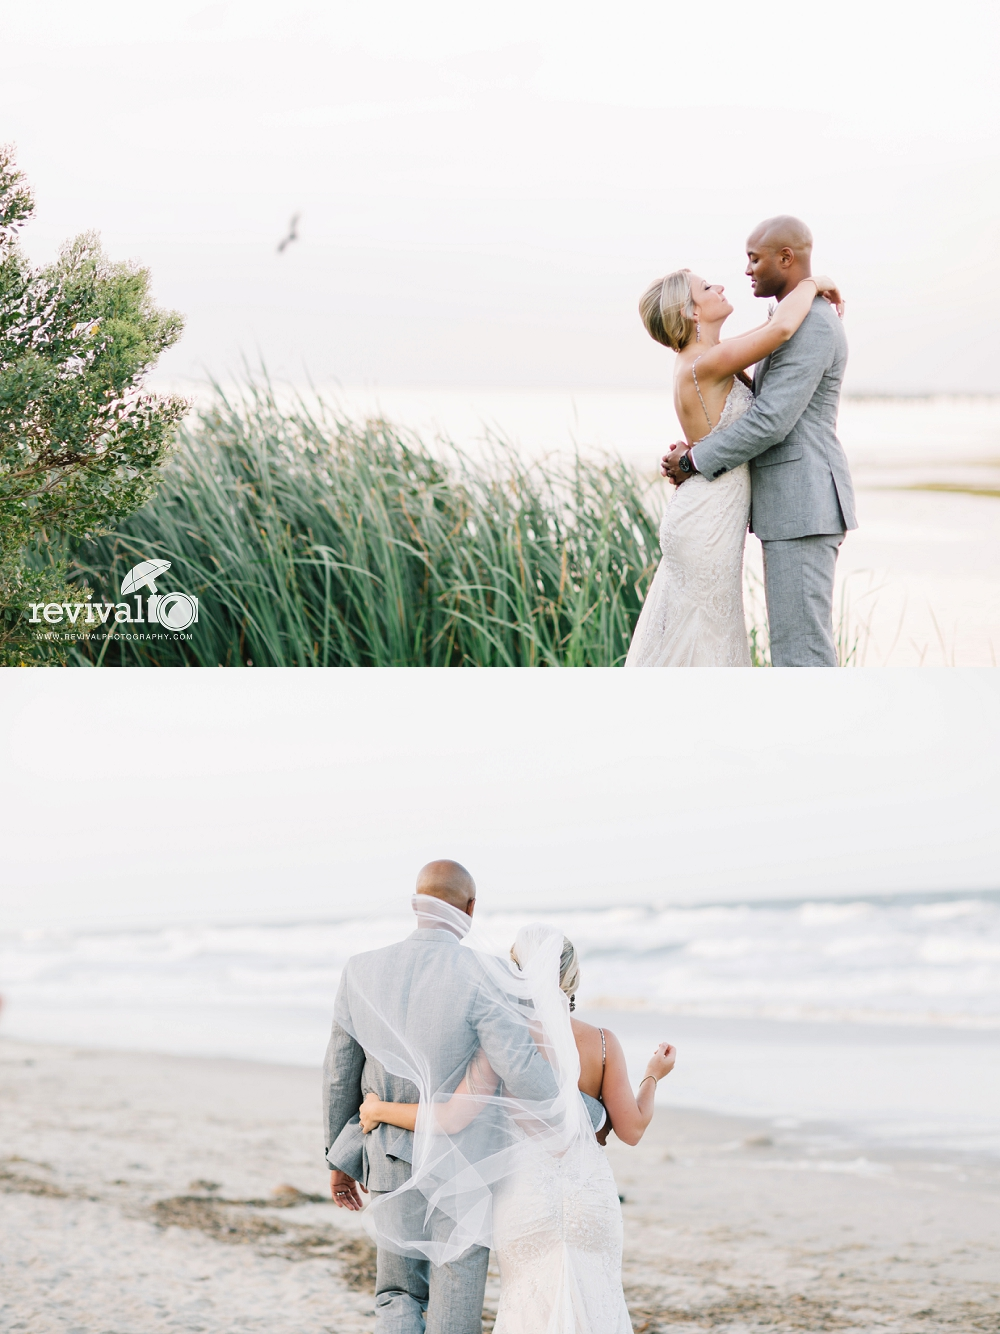 Vanessa+and+Patrick's+Destination+Wedding+Adventure+in+the+OBX+Photography+by+Revival+Photography+www.revivalphotography.jpeg